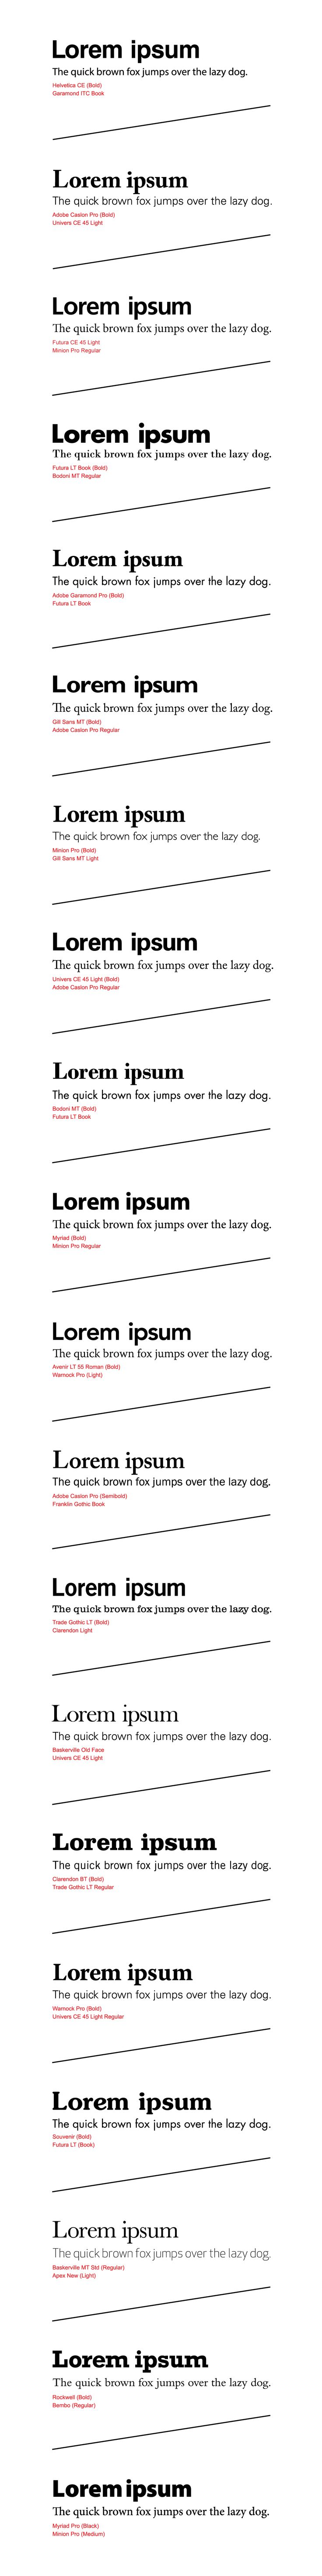 Best Fonts And Font Combinations, PART 3